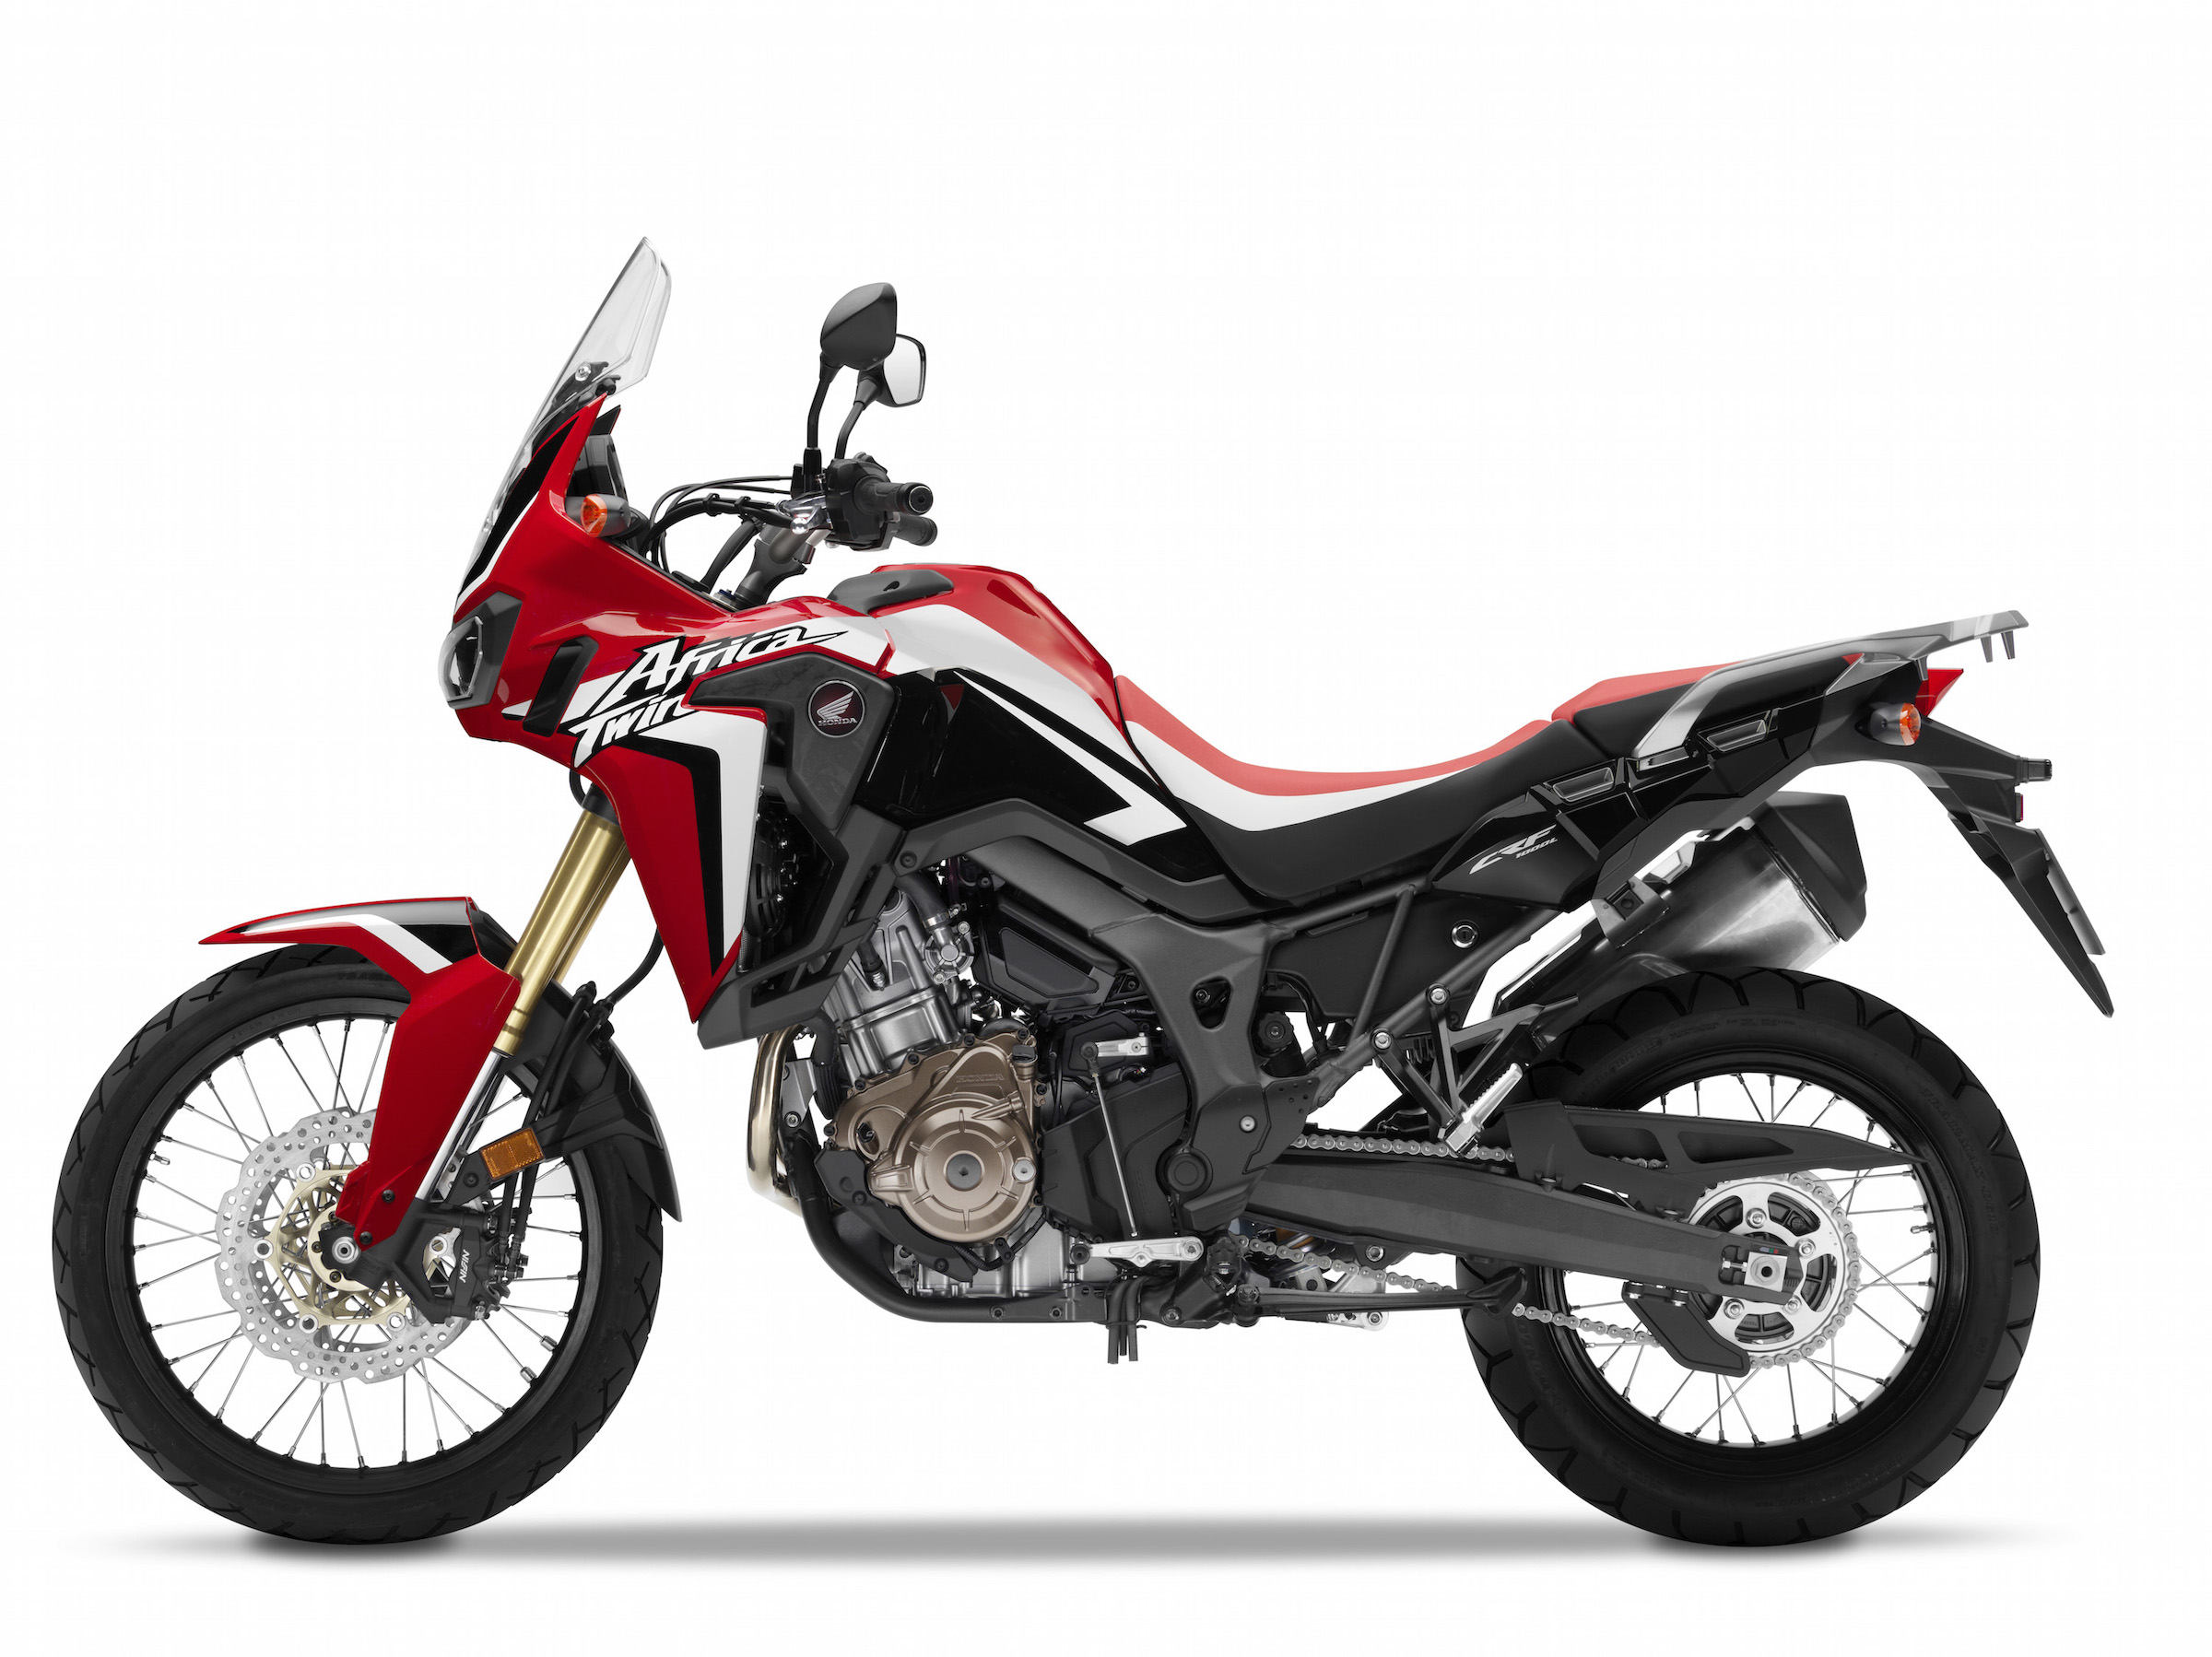 Honda Africa Twin Priced US 12999 13699 With DCT